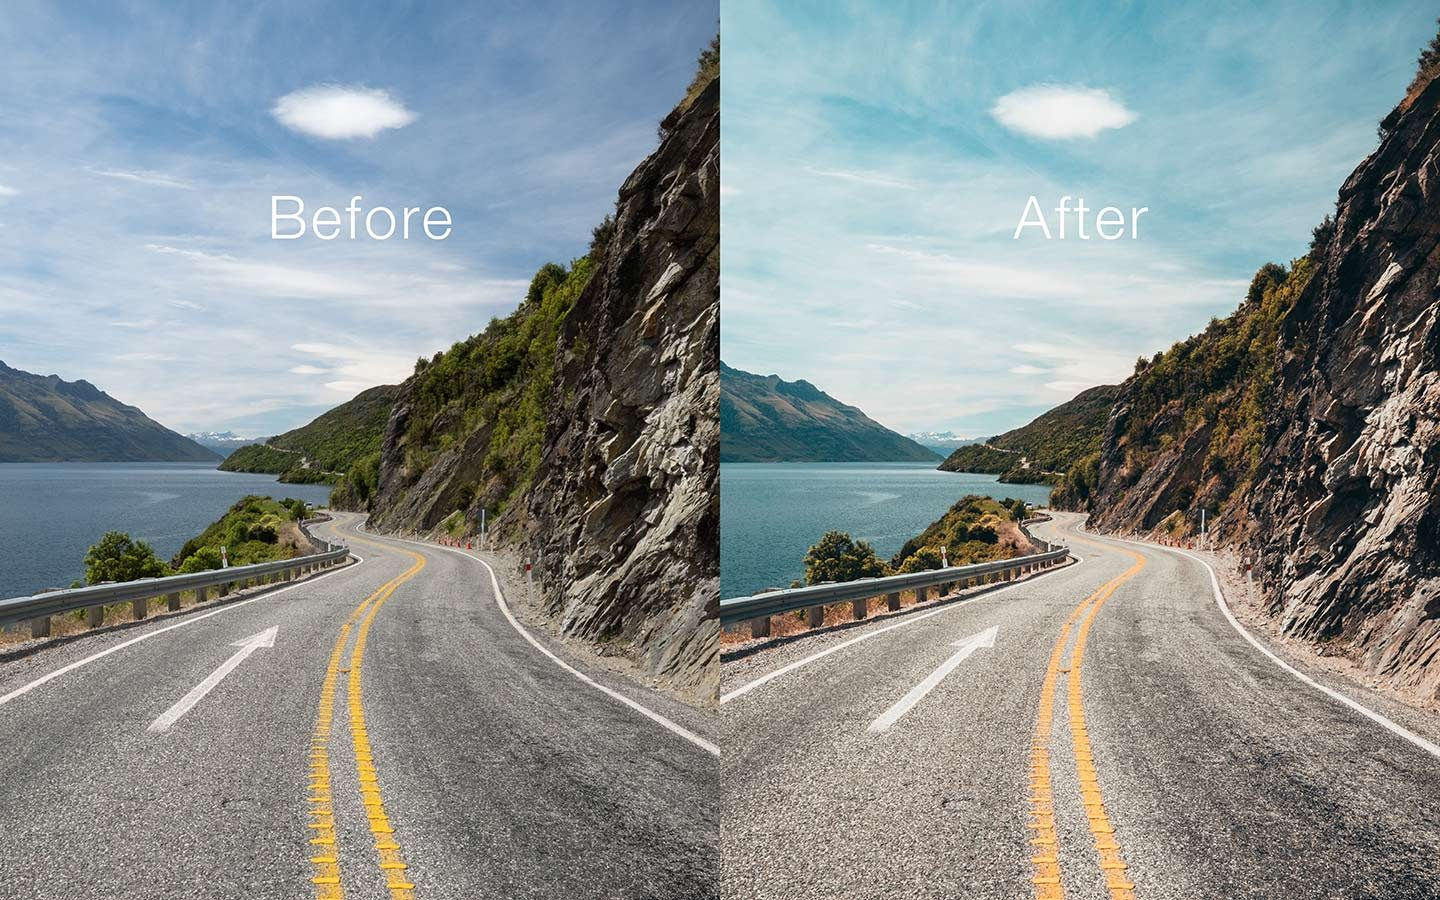 and after of what using a Lightroom mobile preset looks like and what they can do for your photography. The images side by side give a perfect idea of what Lightroom mobile presets can do for your photography. The preset used in this example is called Greece and has been made by Oliver Sjöström who is a Swedish photographer.